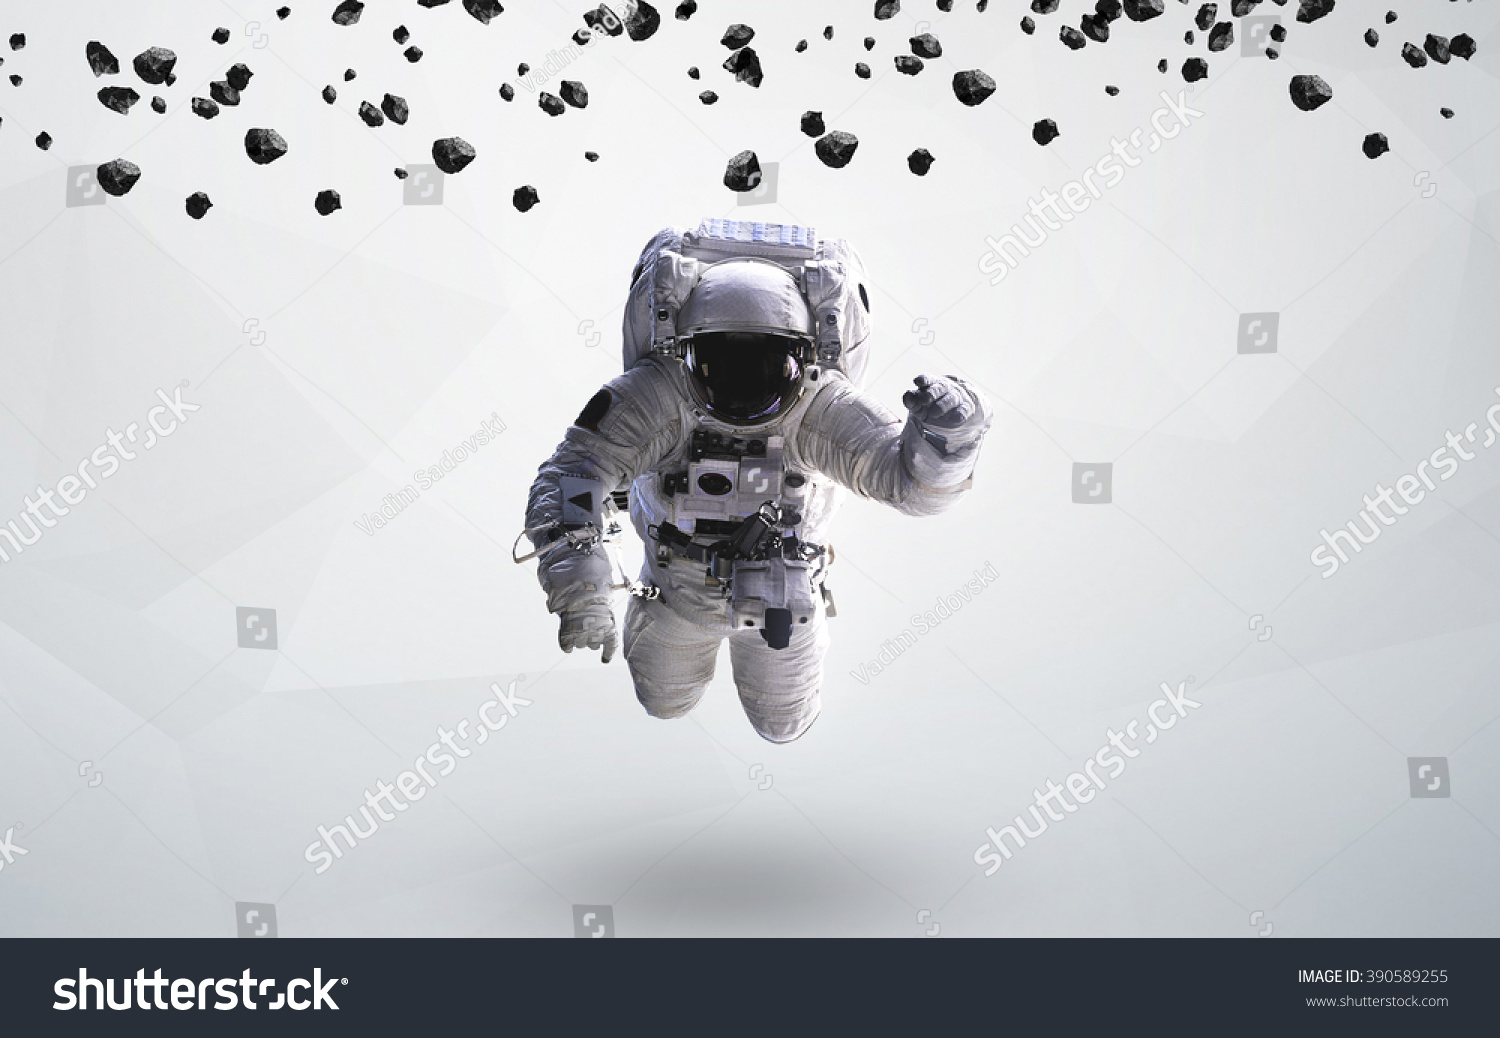 Astronaut outer space modern art elements stock photo for Outer space elements